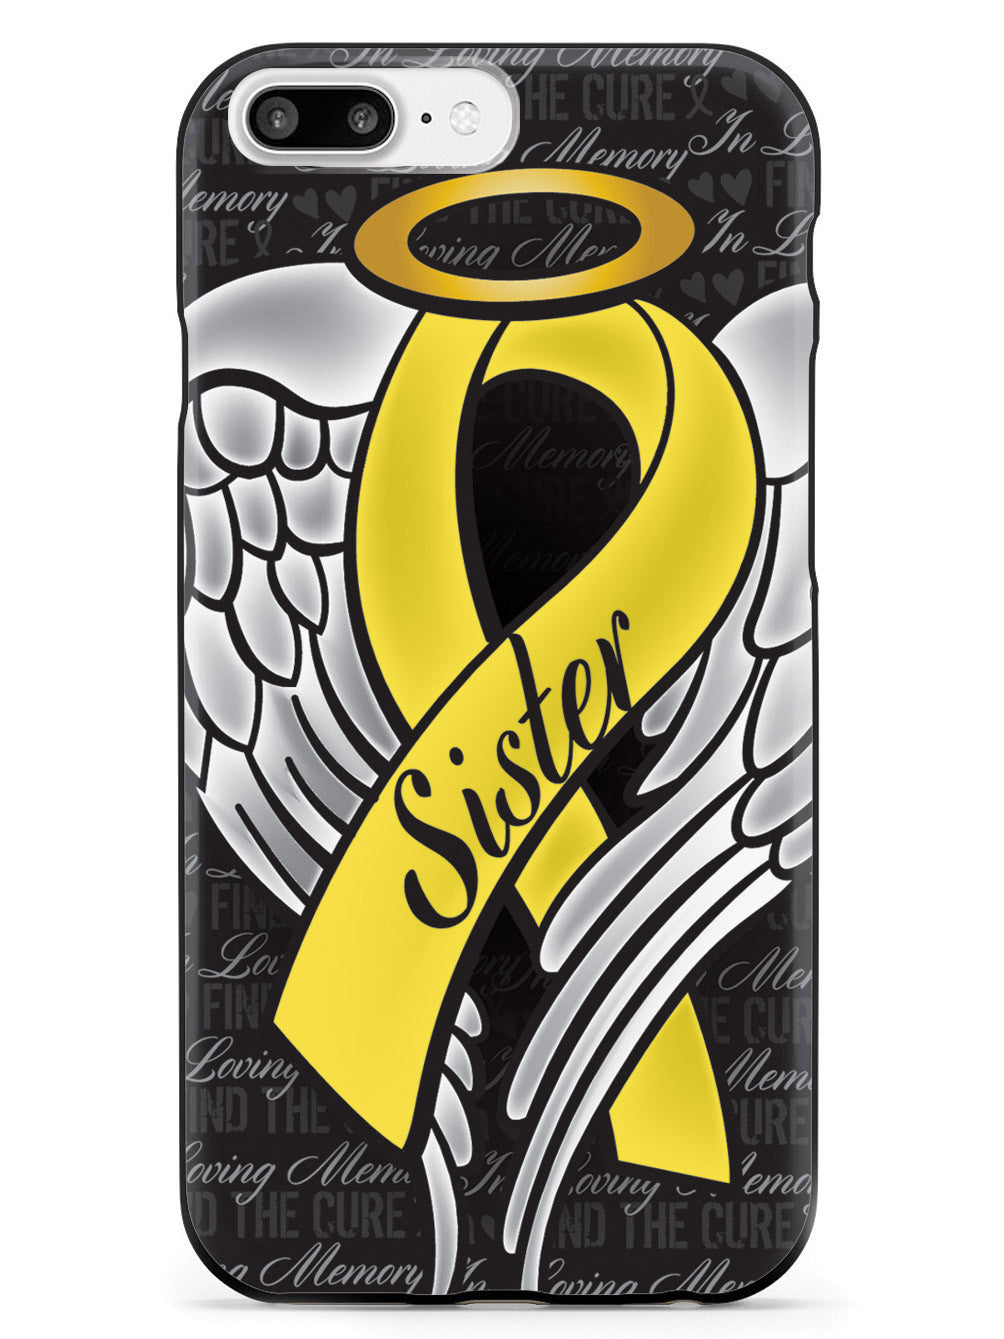 In Loving Memory of My Sister - Yellow Ribbon Case